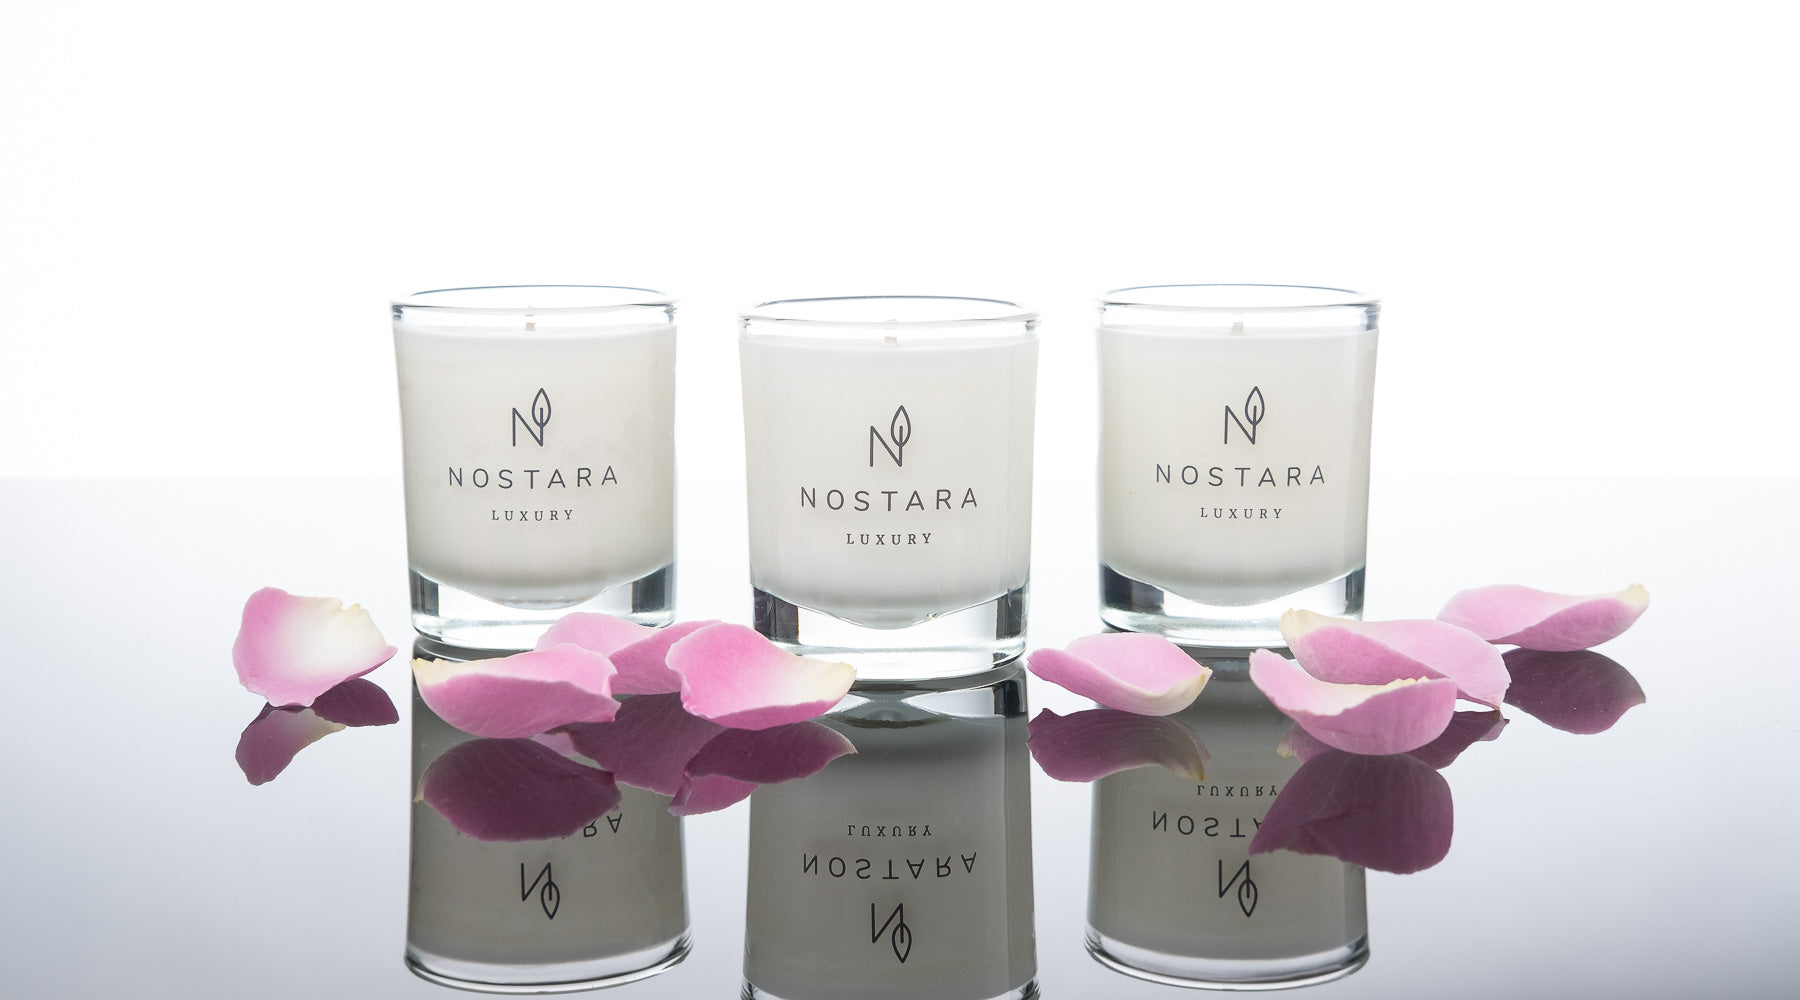 Nostara Home Fragrance Travel Candle Collection Image with Pink Petals